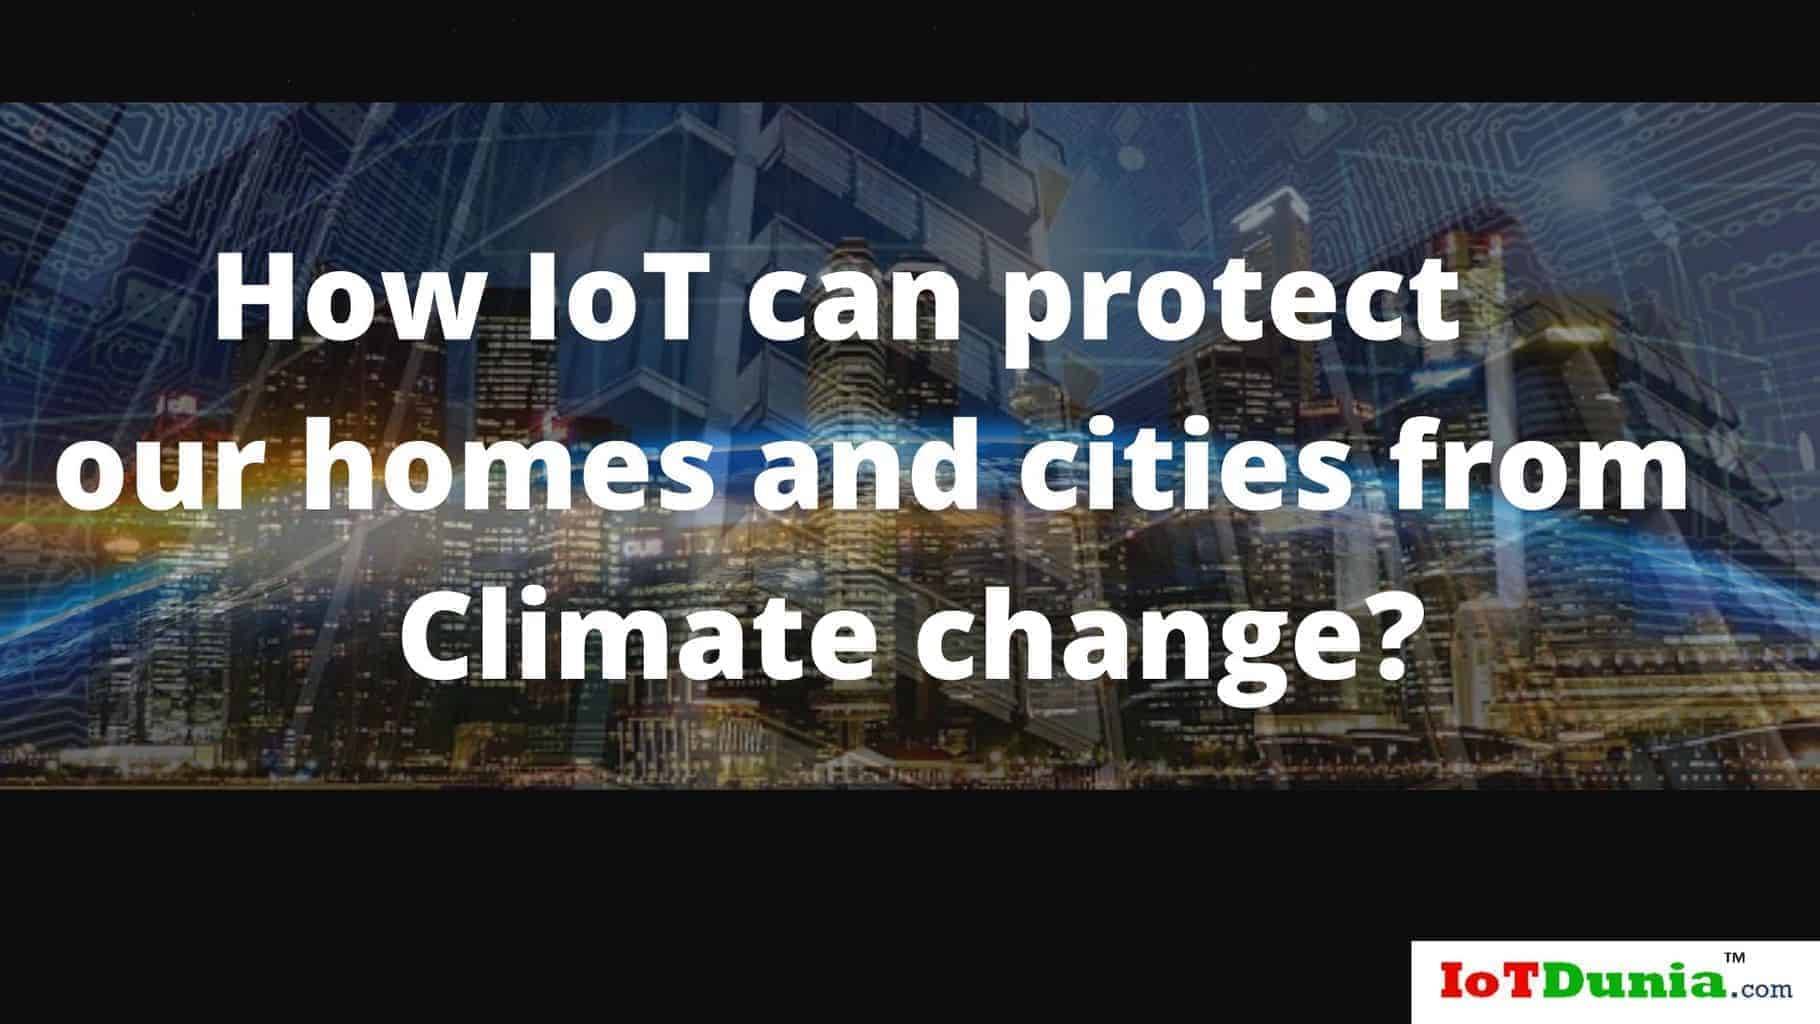 How IoT can protect our homes and cities from climate change?